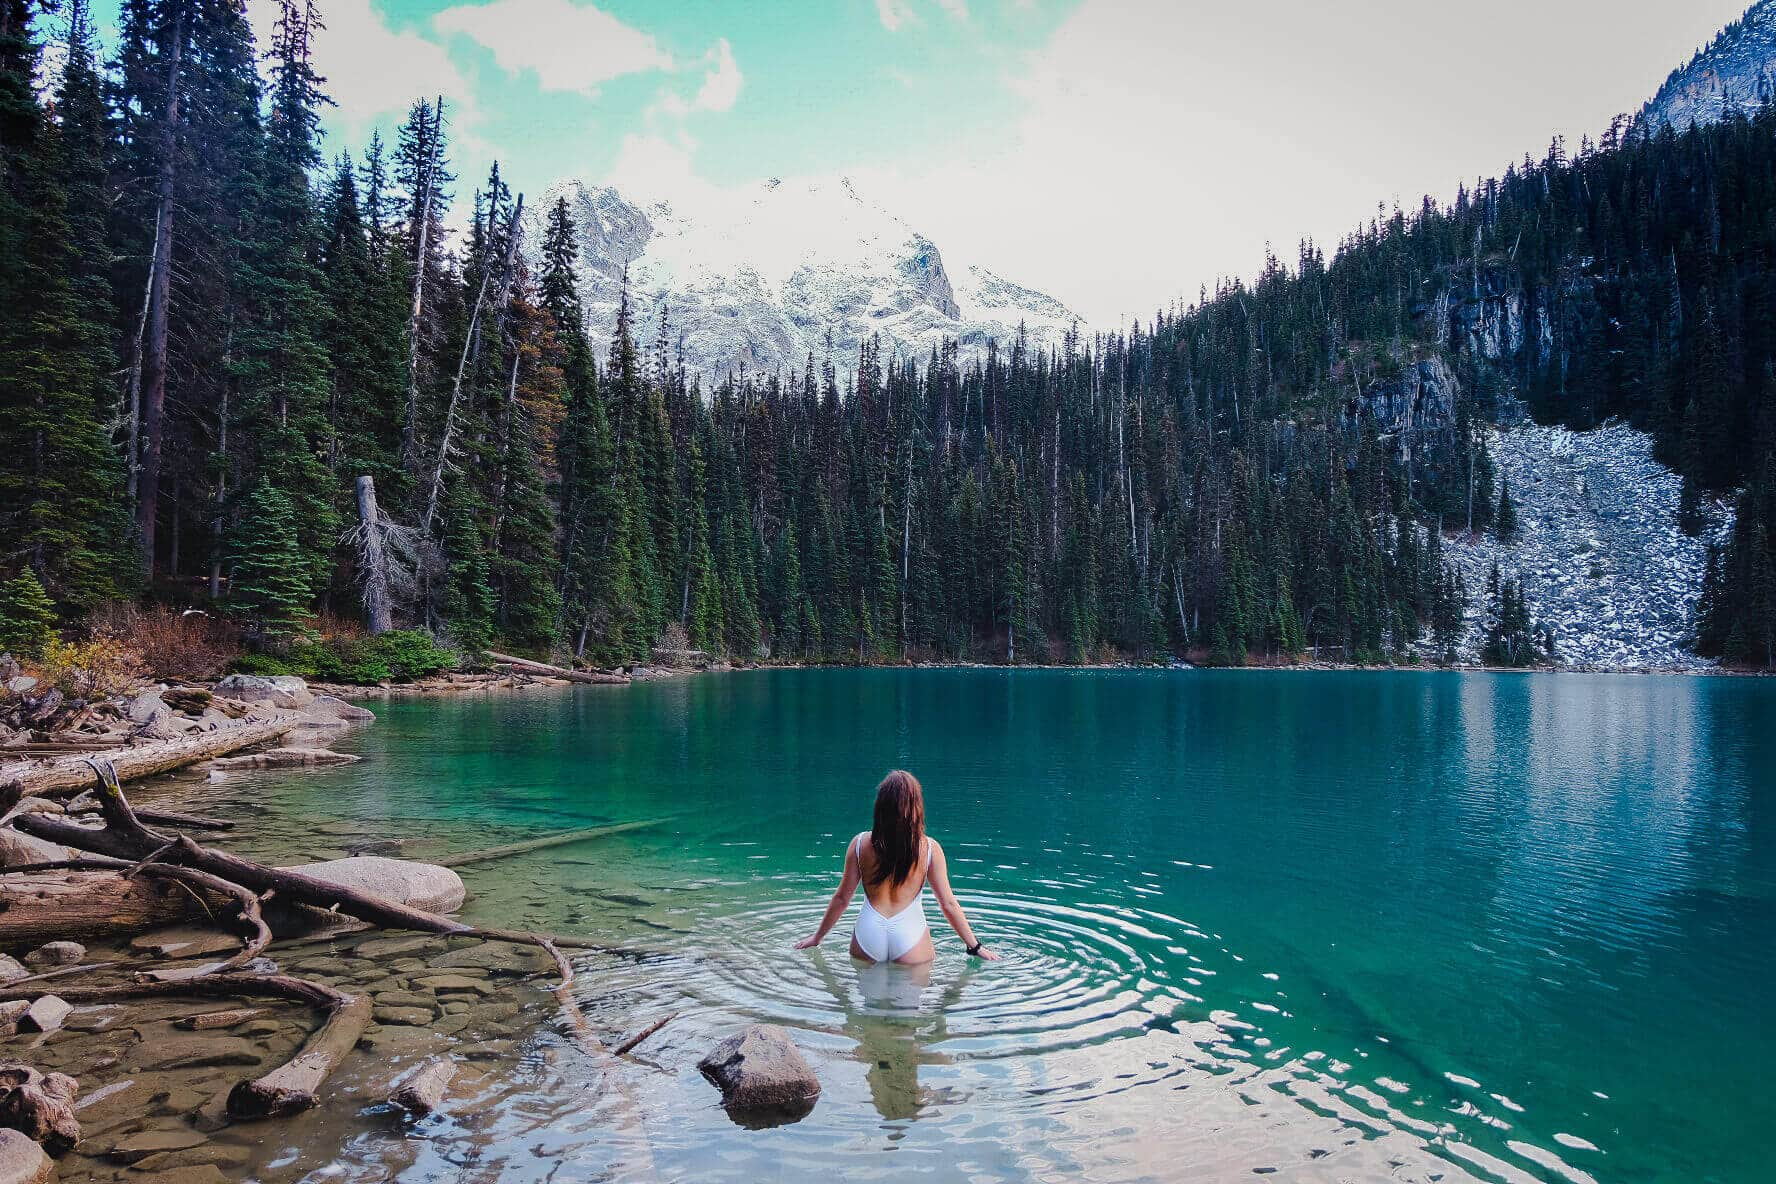 Swimming in Joffre Lakes, Canada